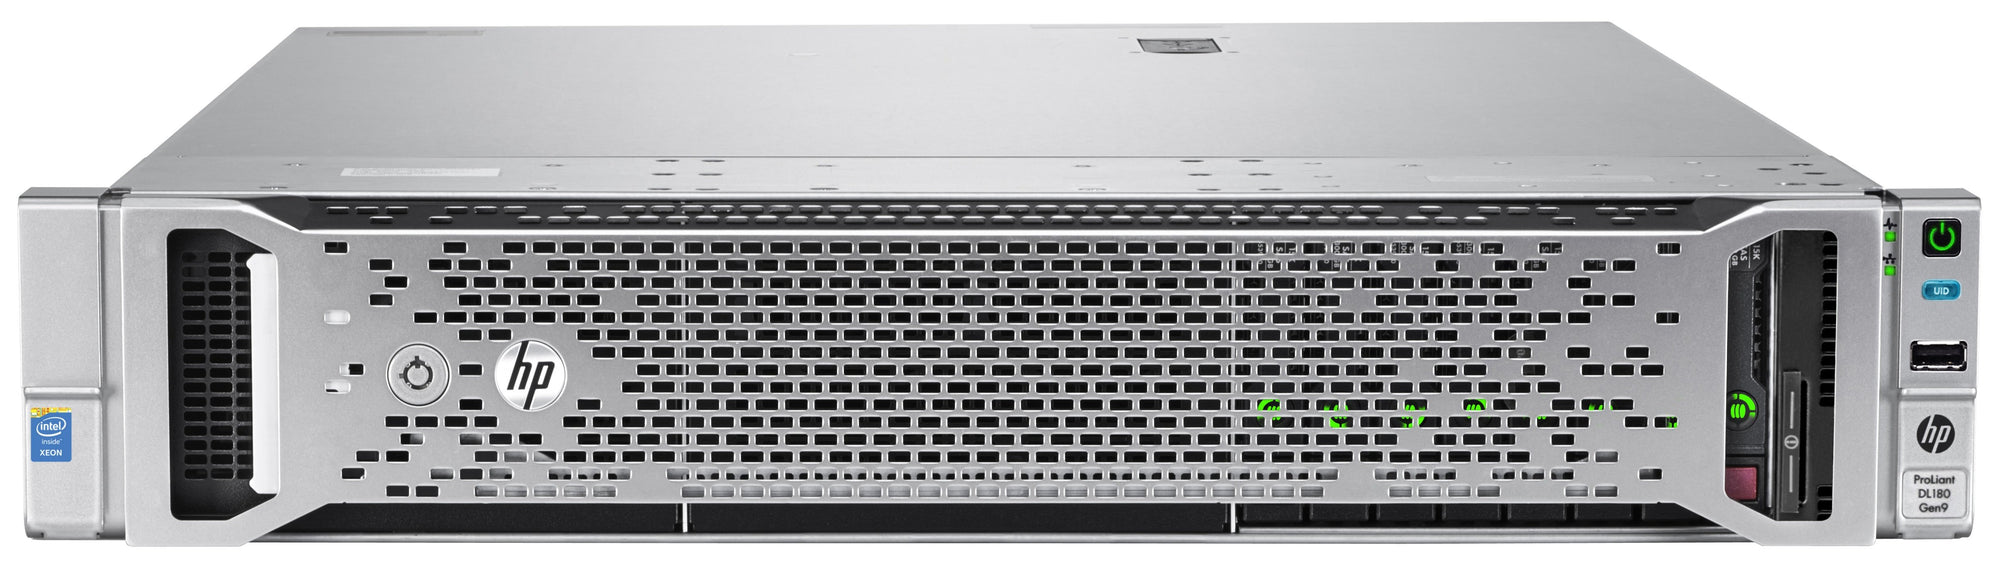 Refurbished HPE ProLiant DL180 Gen9 Configure to Order Server